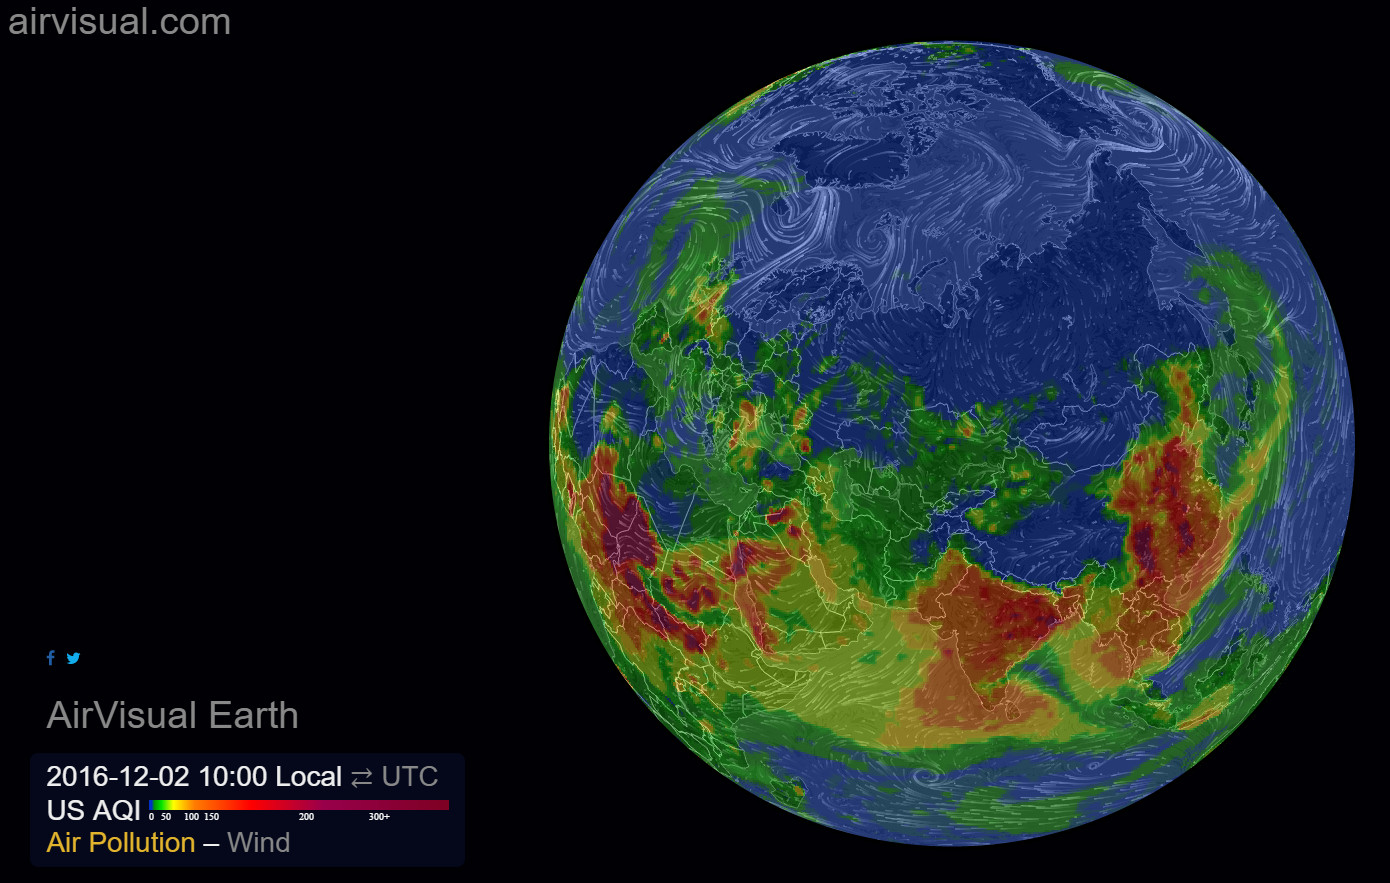 Air pollution flow across the planet in real time